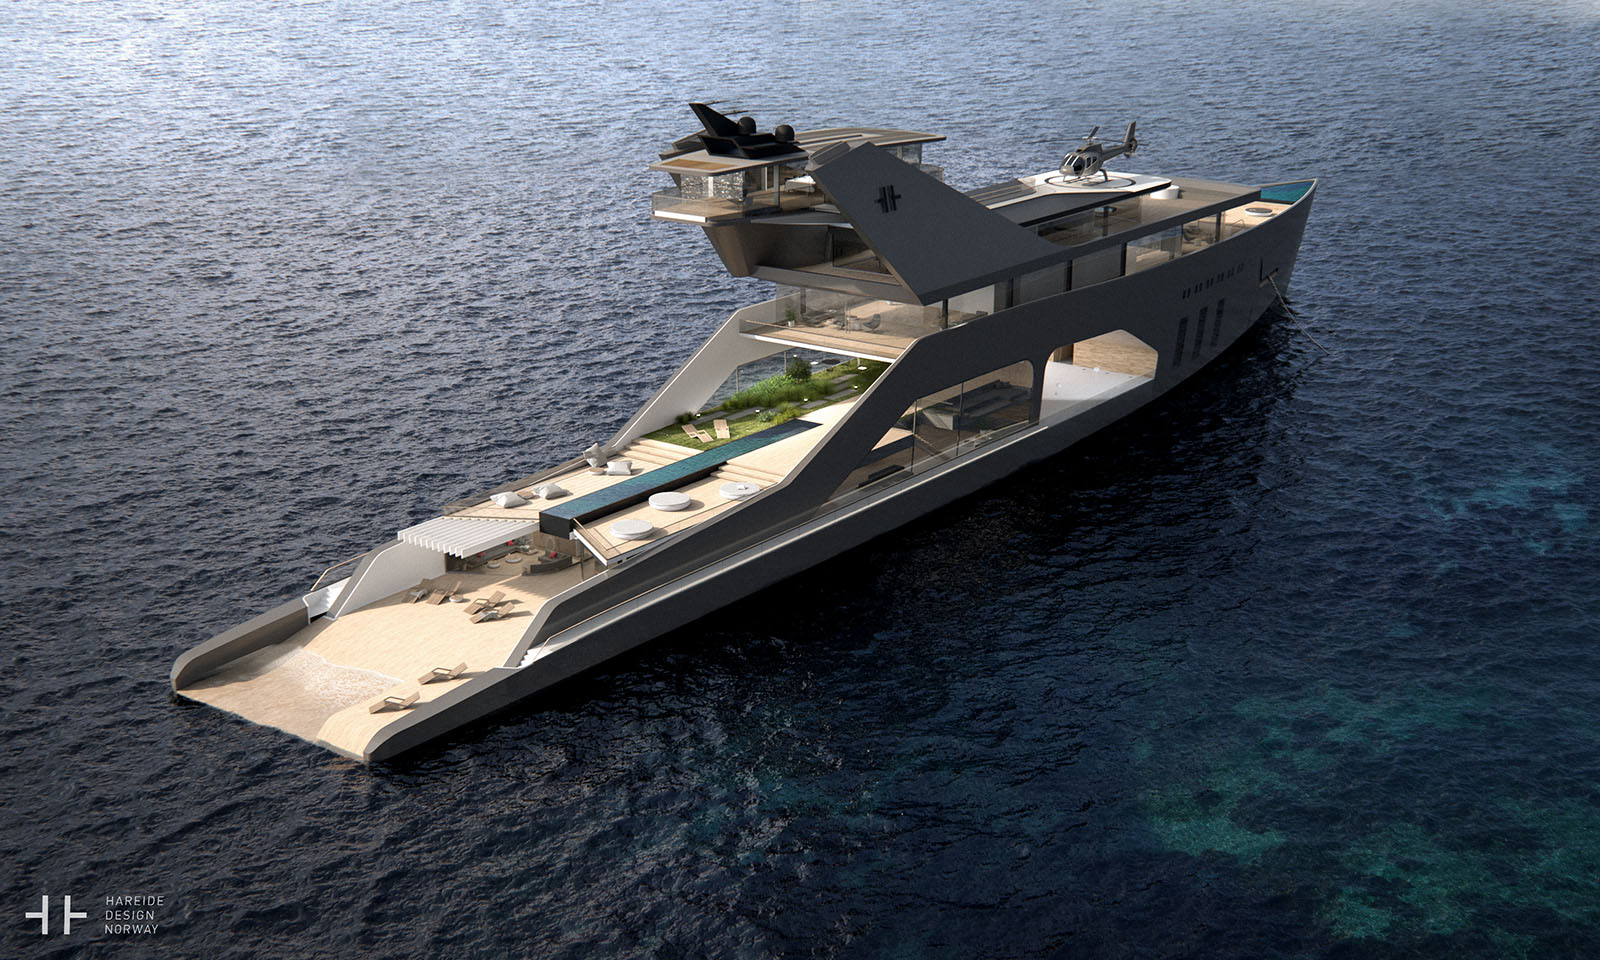 The 108M Luxury Yacht Concept With It's Own Private Beach 2